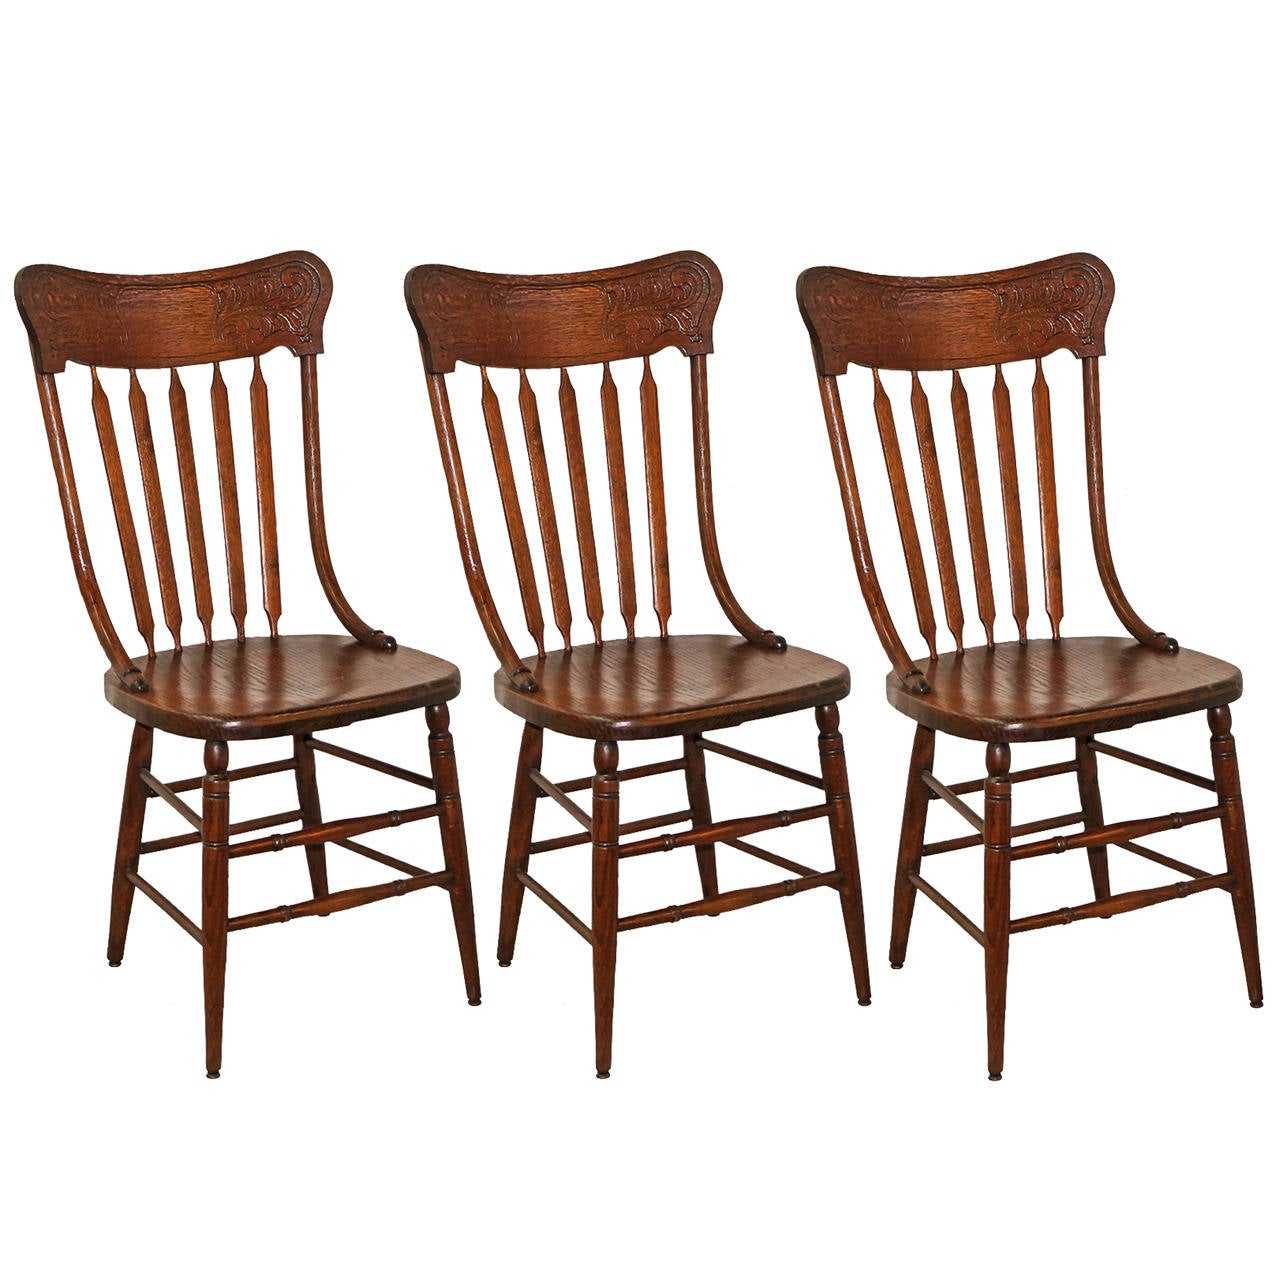 oak pressed back chairs for sale at 1stdibs